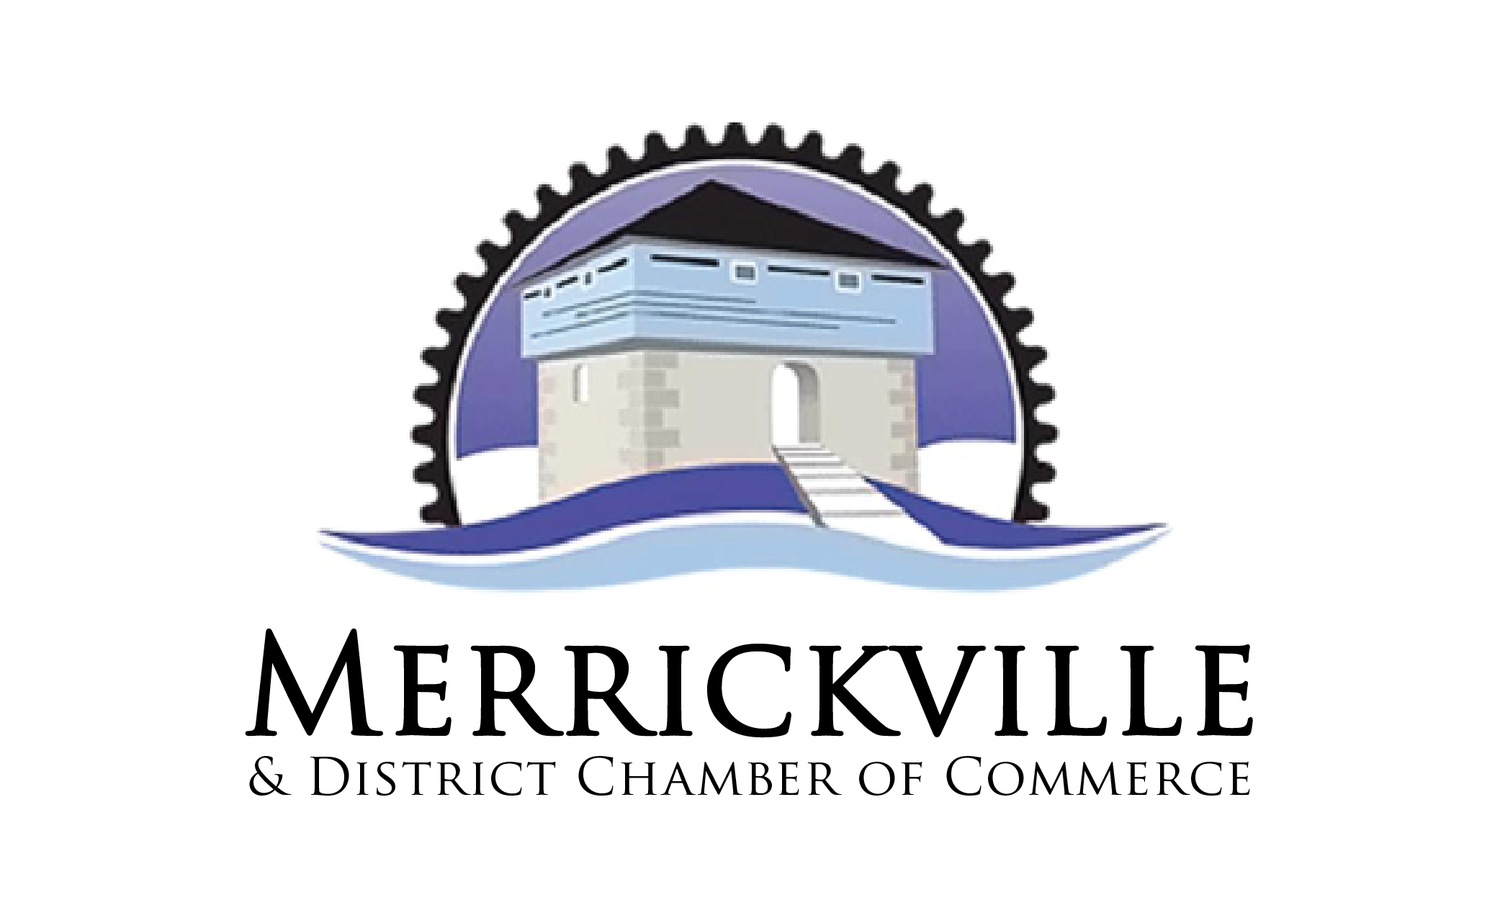 Merrickville & District Chamber of Commerce